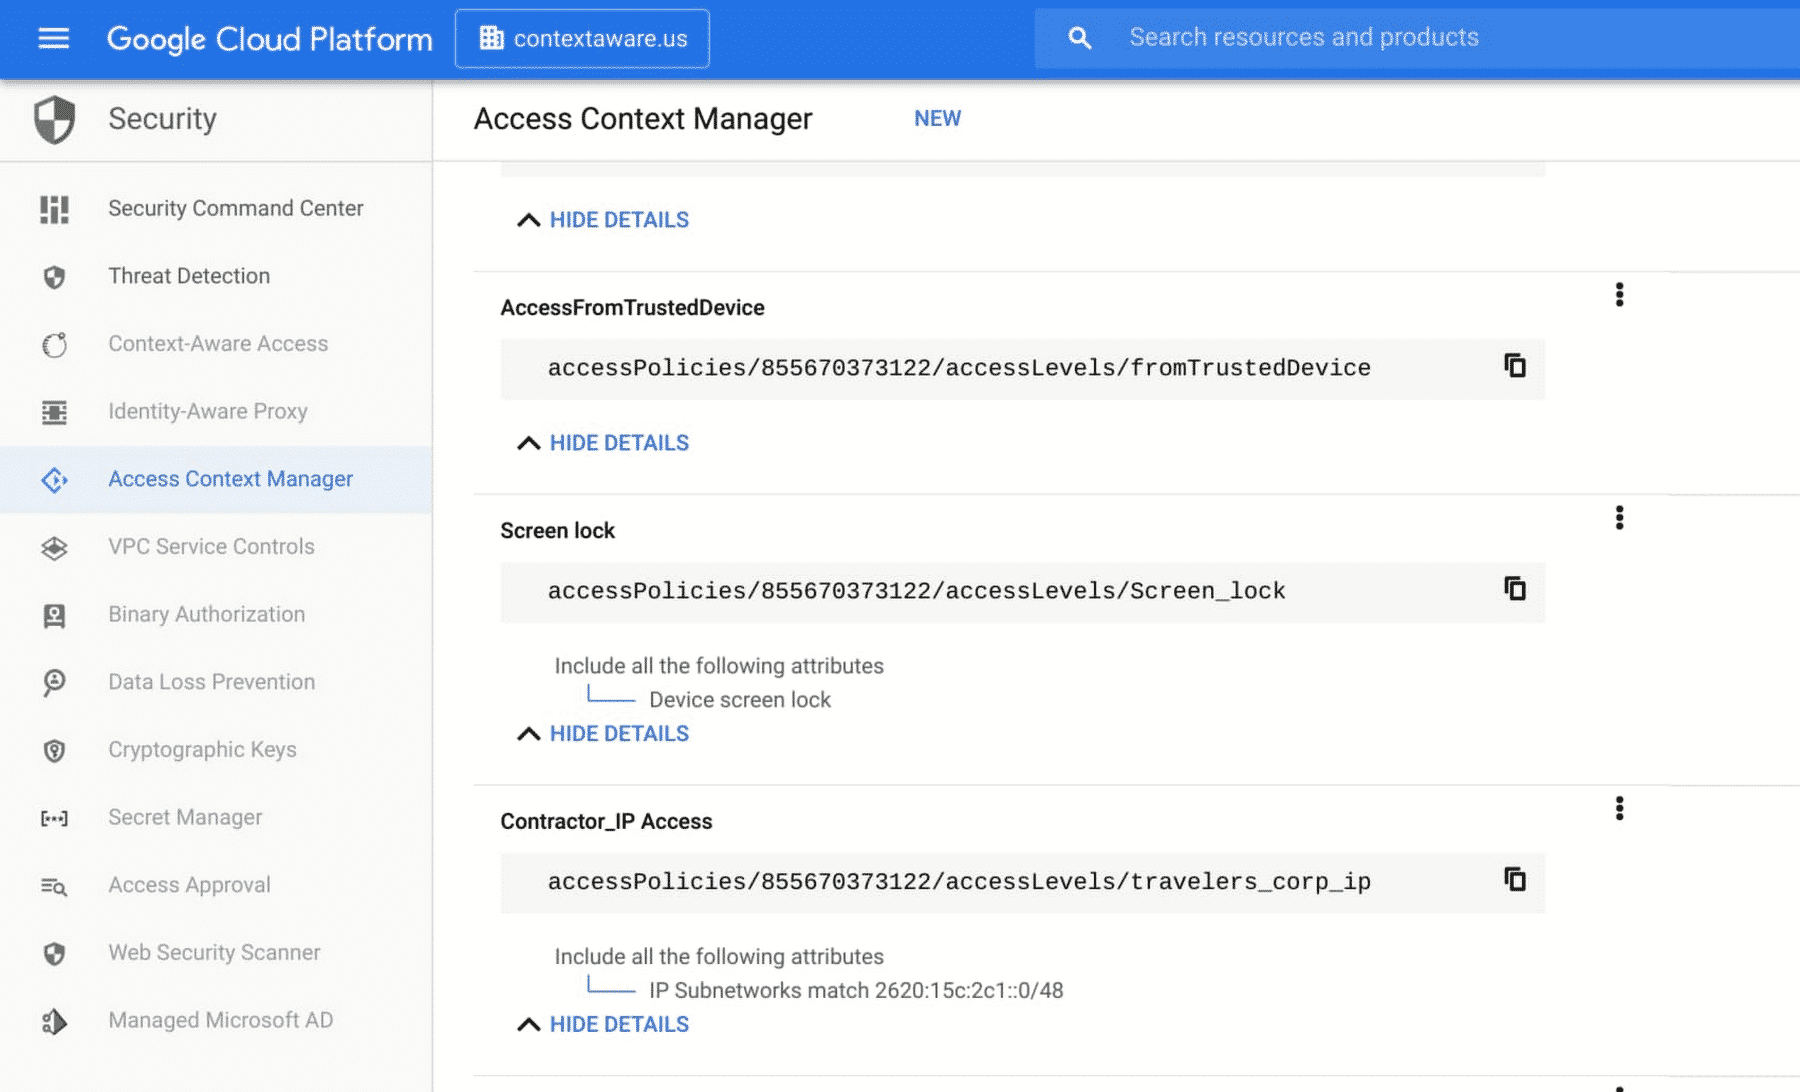 Access Context Manager